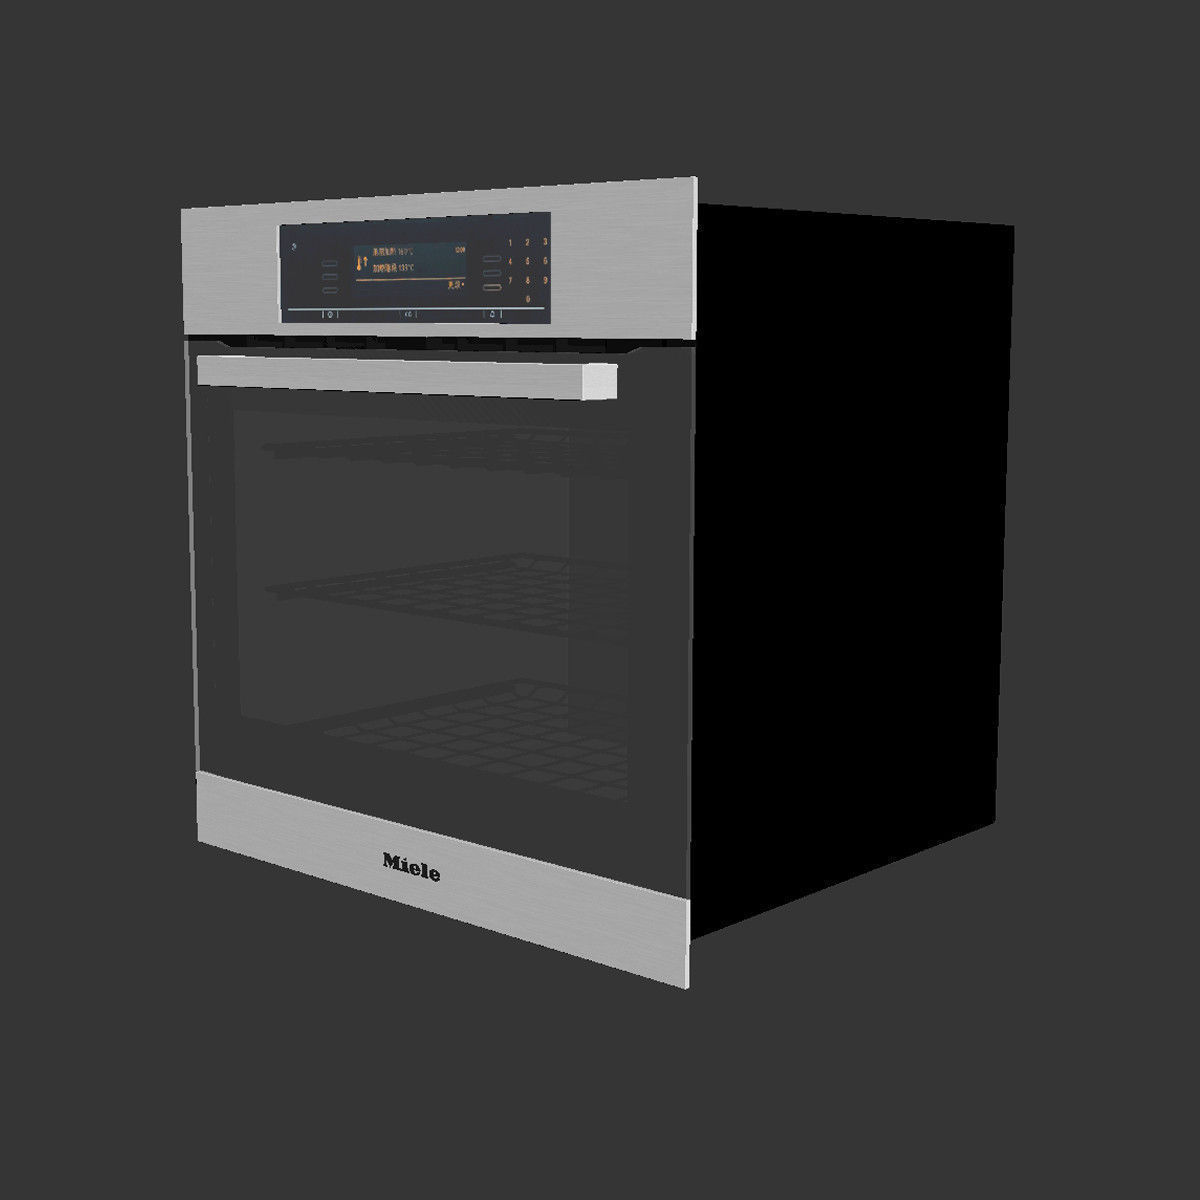 oven 3d model - 28 images - toaster oven westinghouse